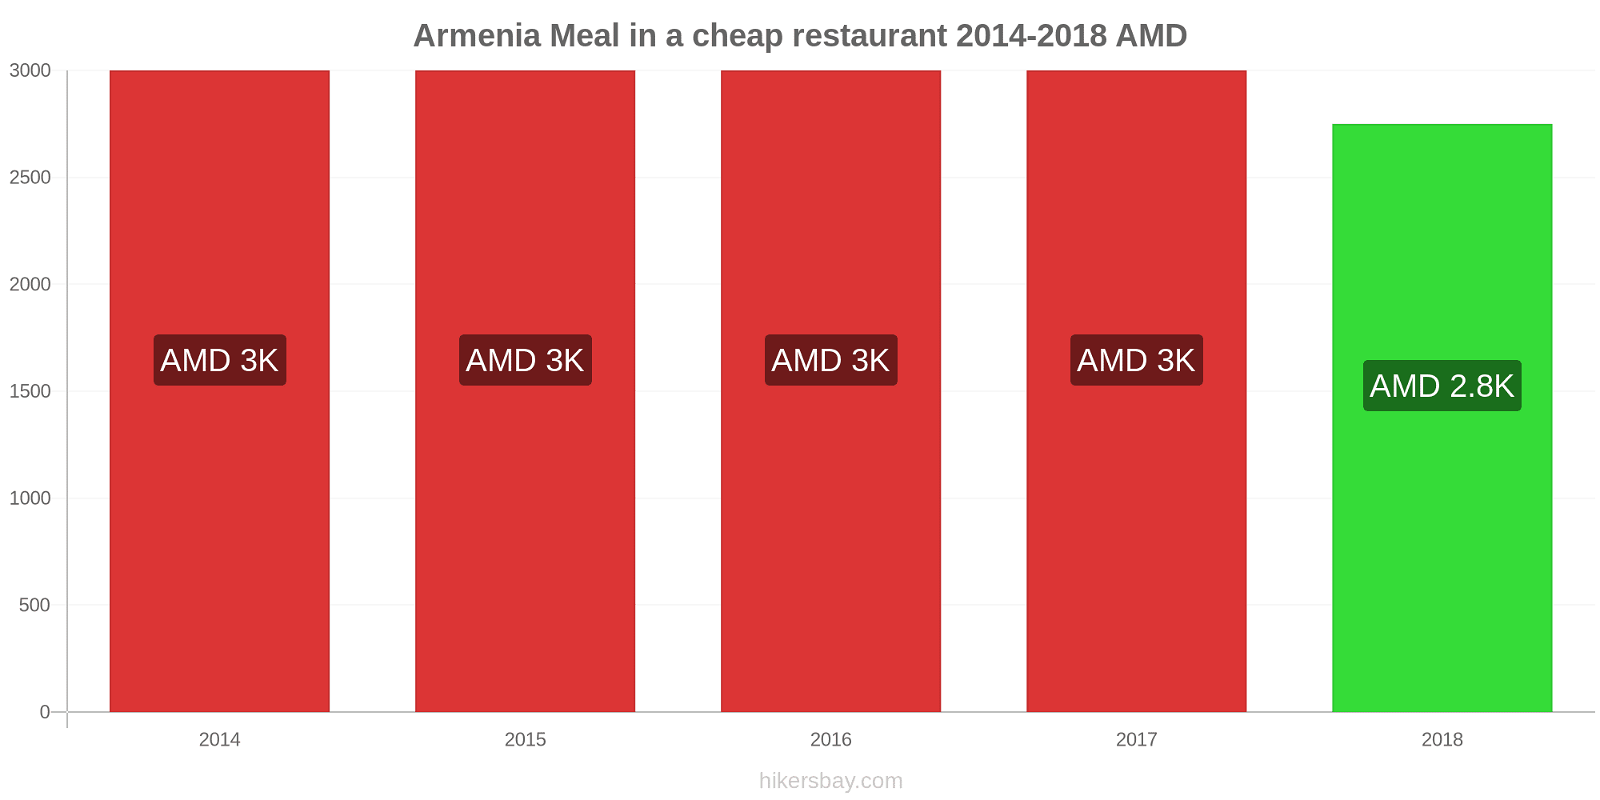 Armenia price changes Meal in a cheap restaurant hikersbay.com